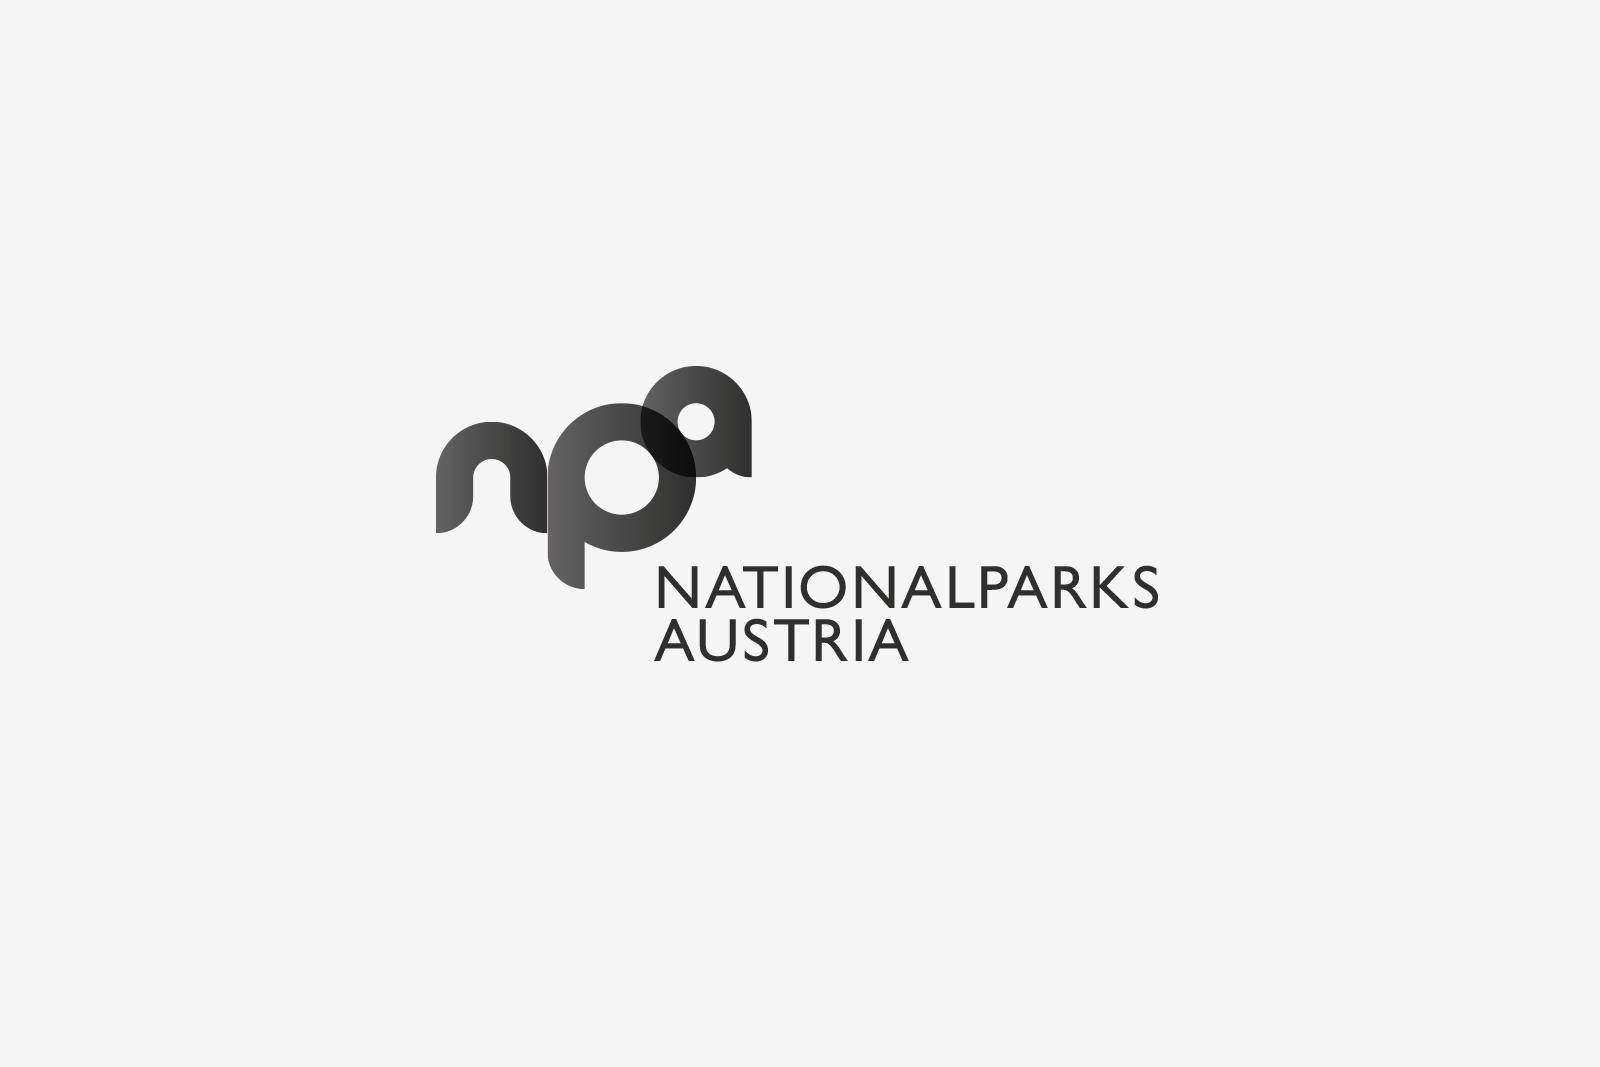 Logo Nationalparks Austria Bw